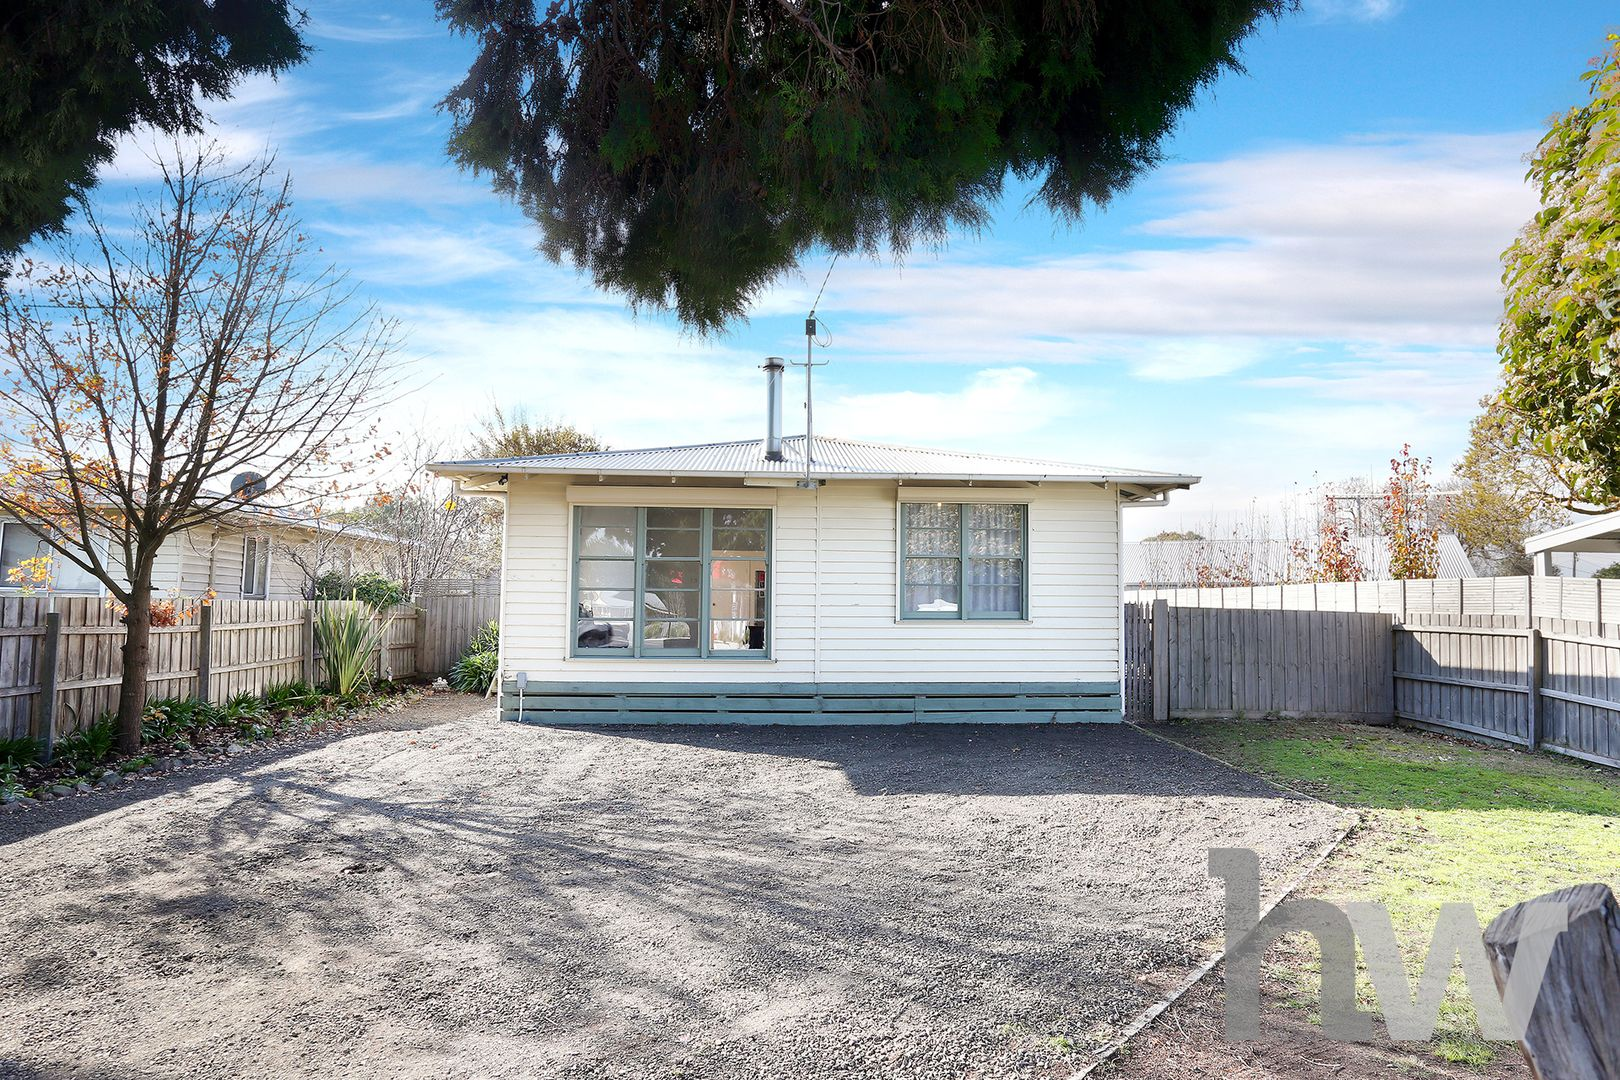 7A Anderson Street, Winchelsea VIC 3241, Image 0